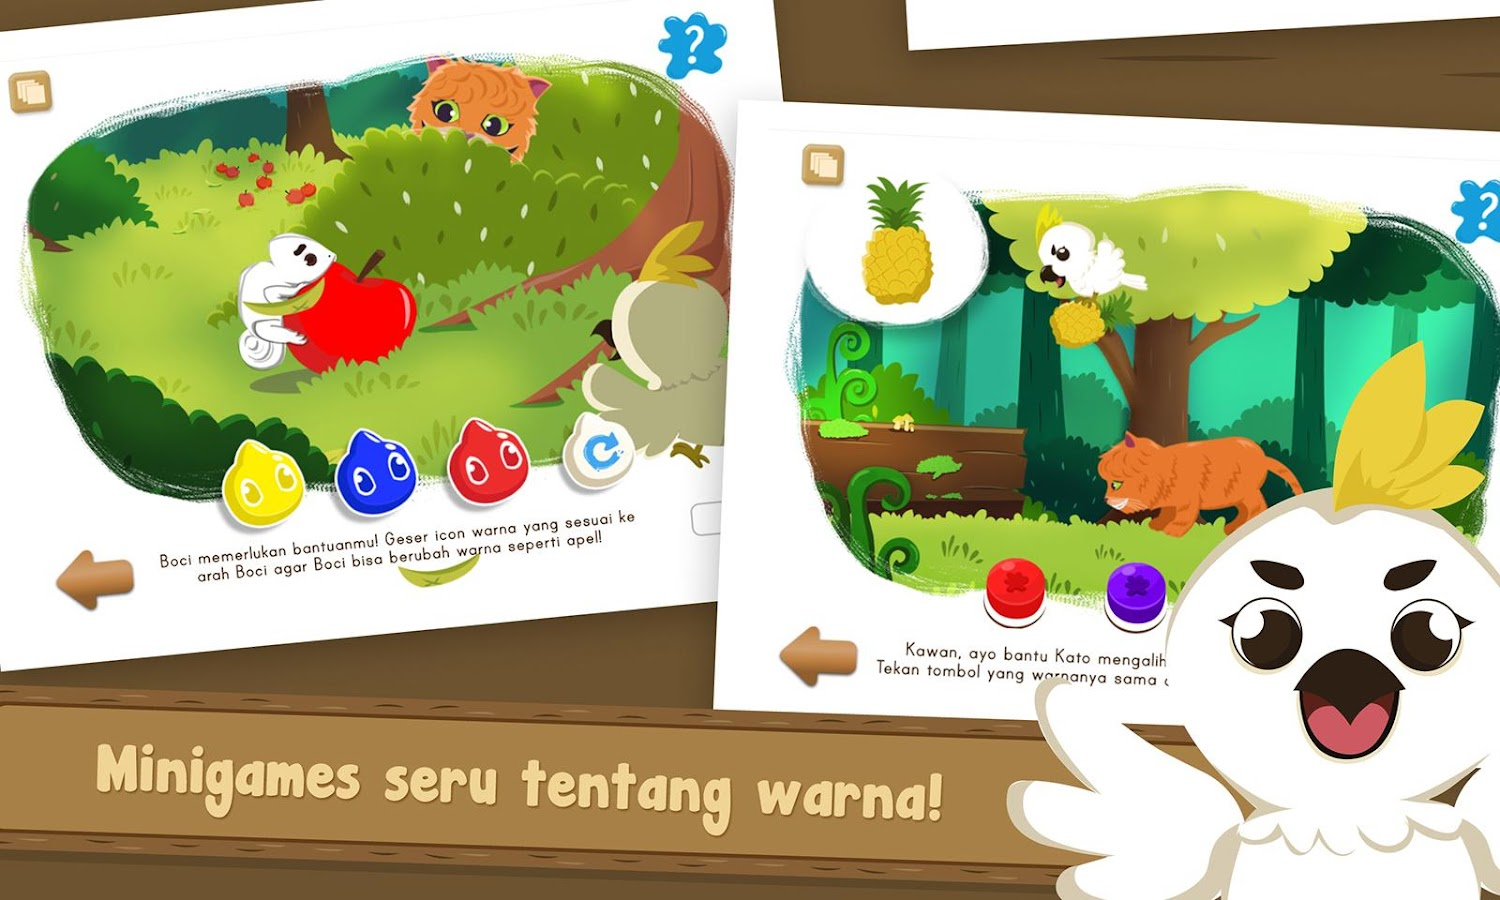 Petualangan Boci 1 Warna Android Apps On Google Play